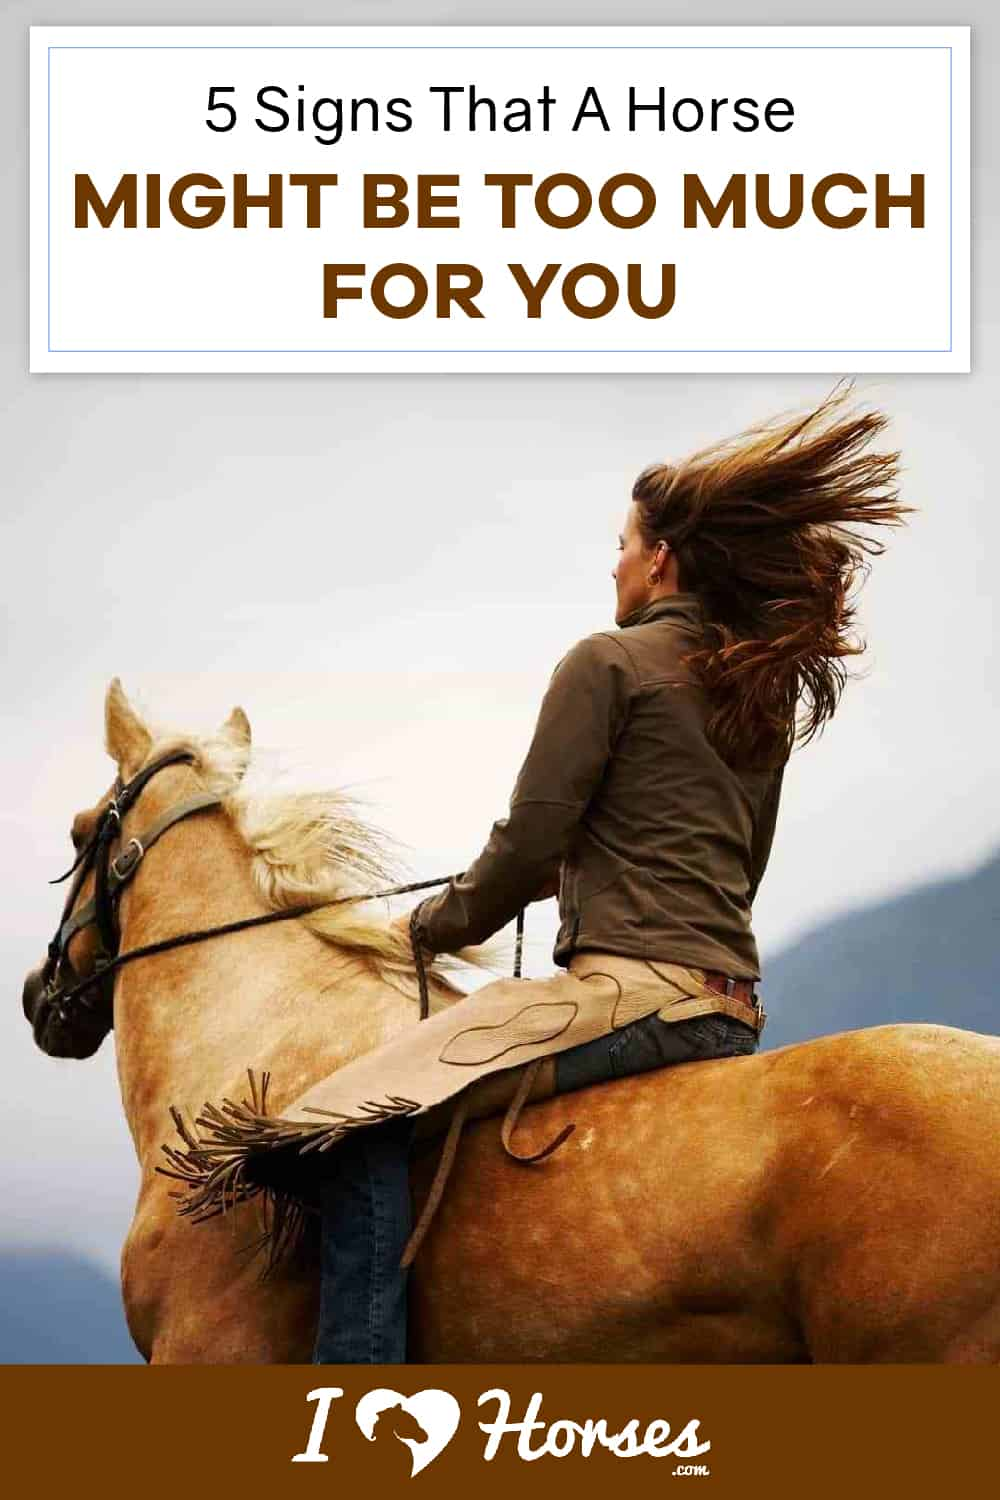 5 Signs That A Horse Might Be Too Much For You